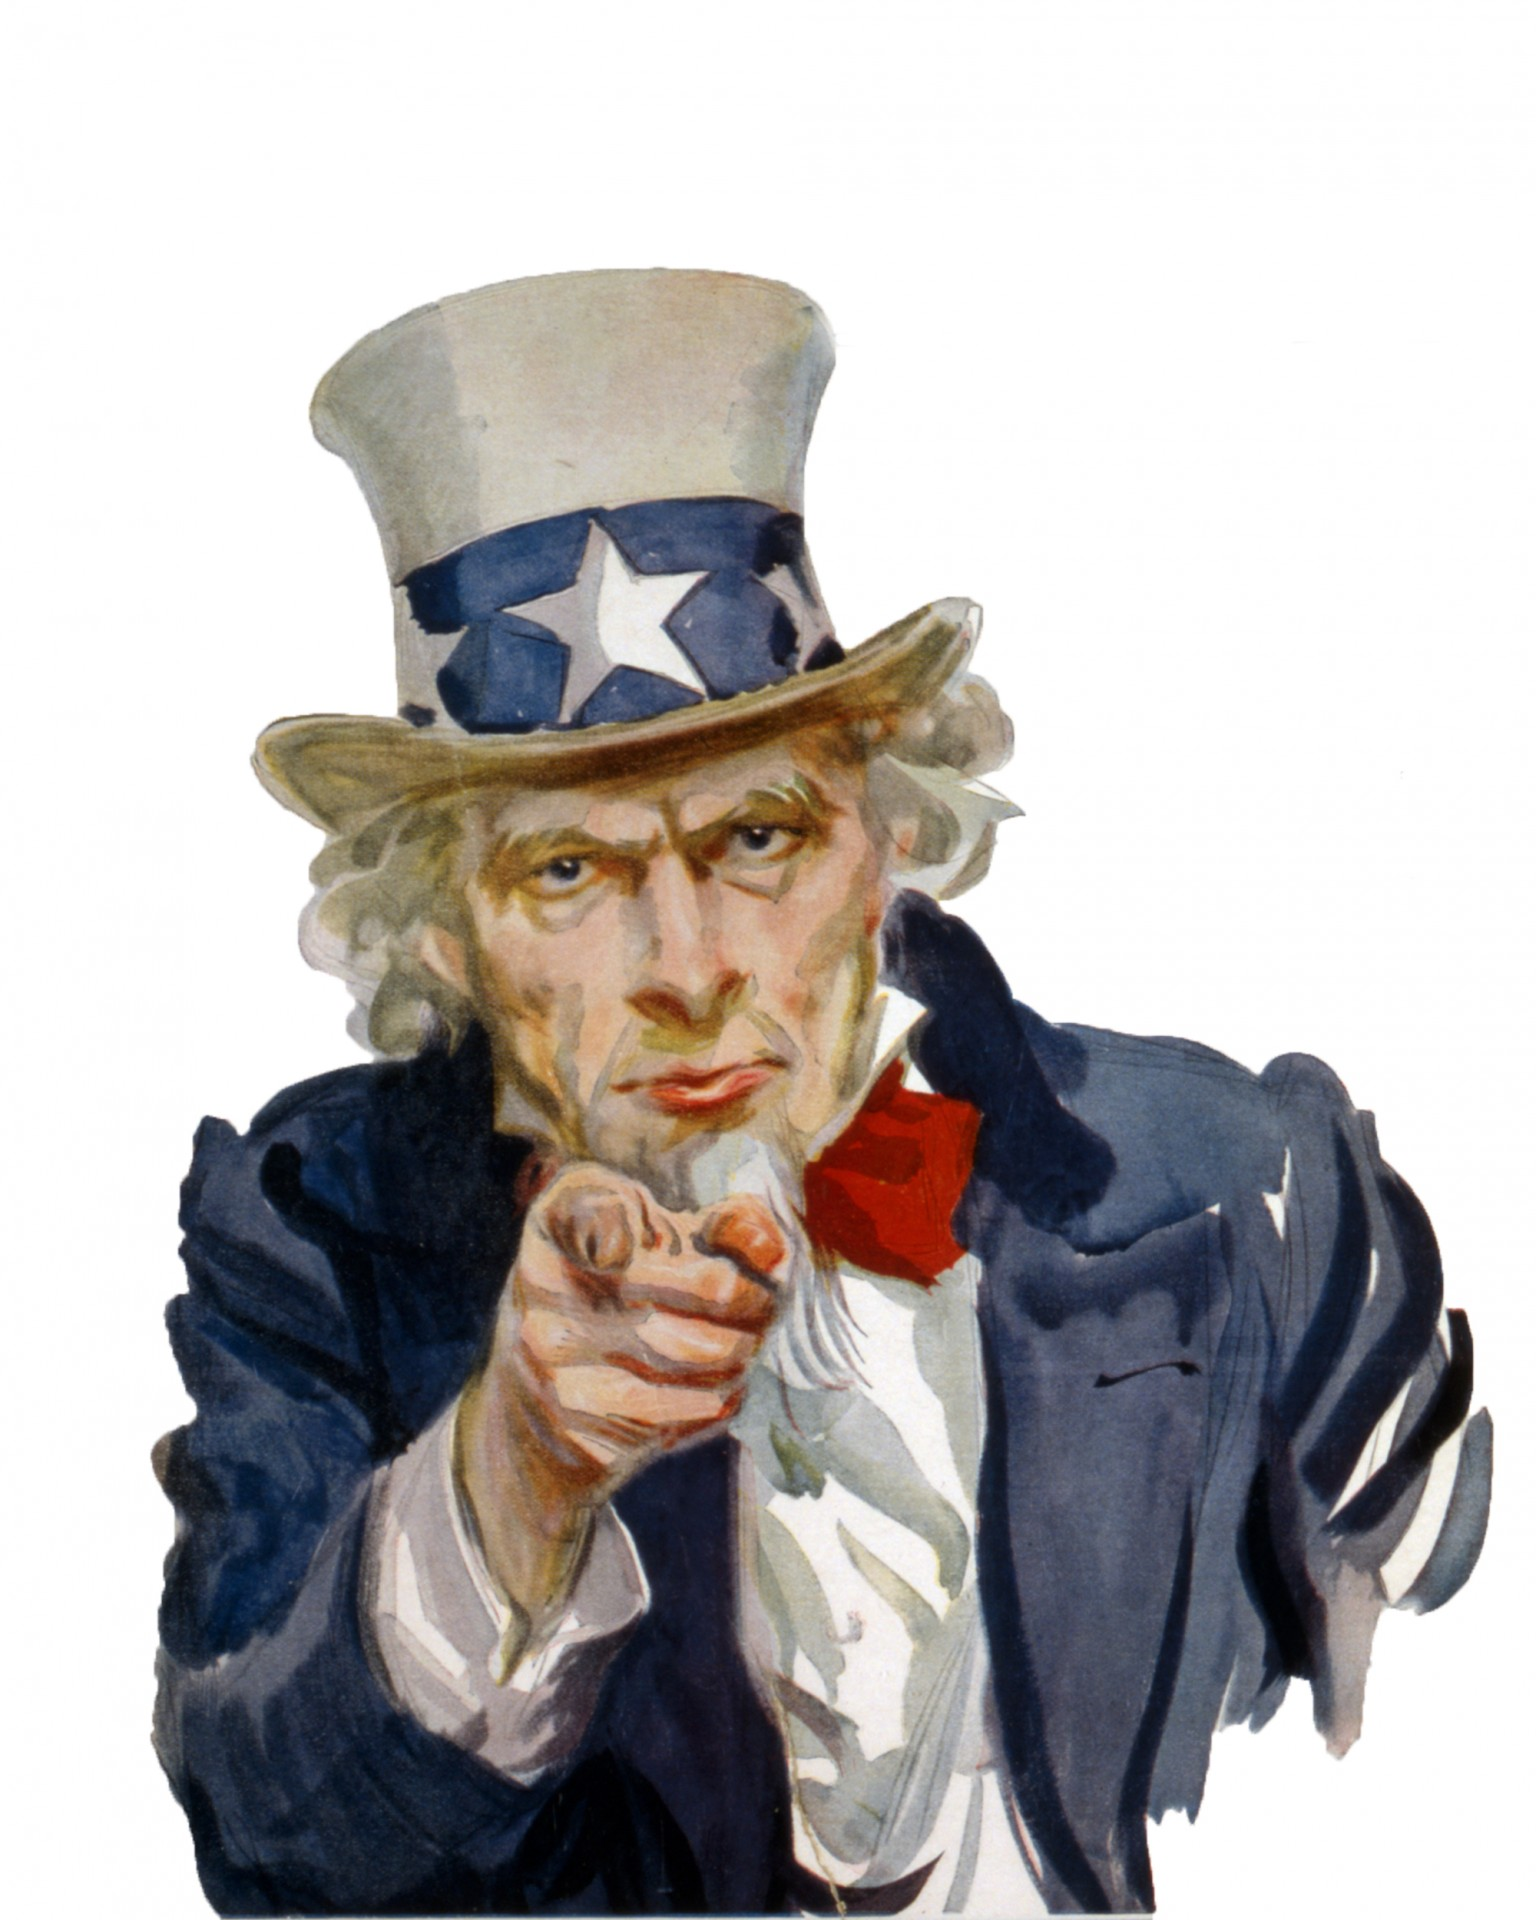 You clipart uncle sam. Wants free stock photo